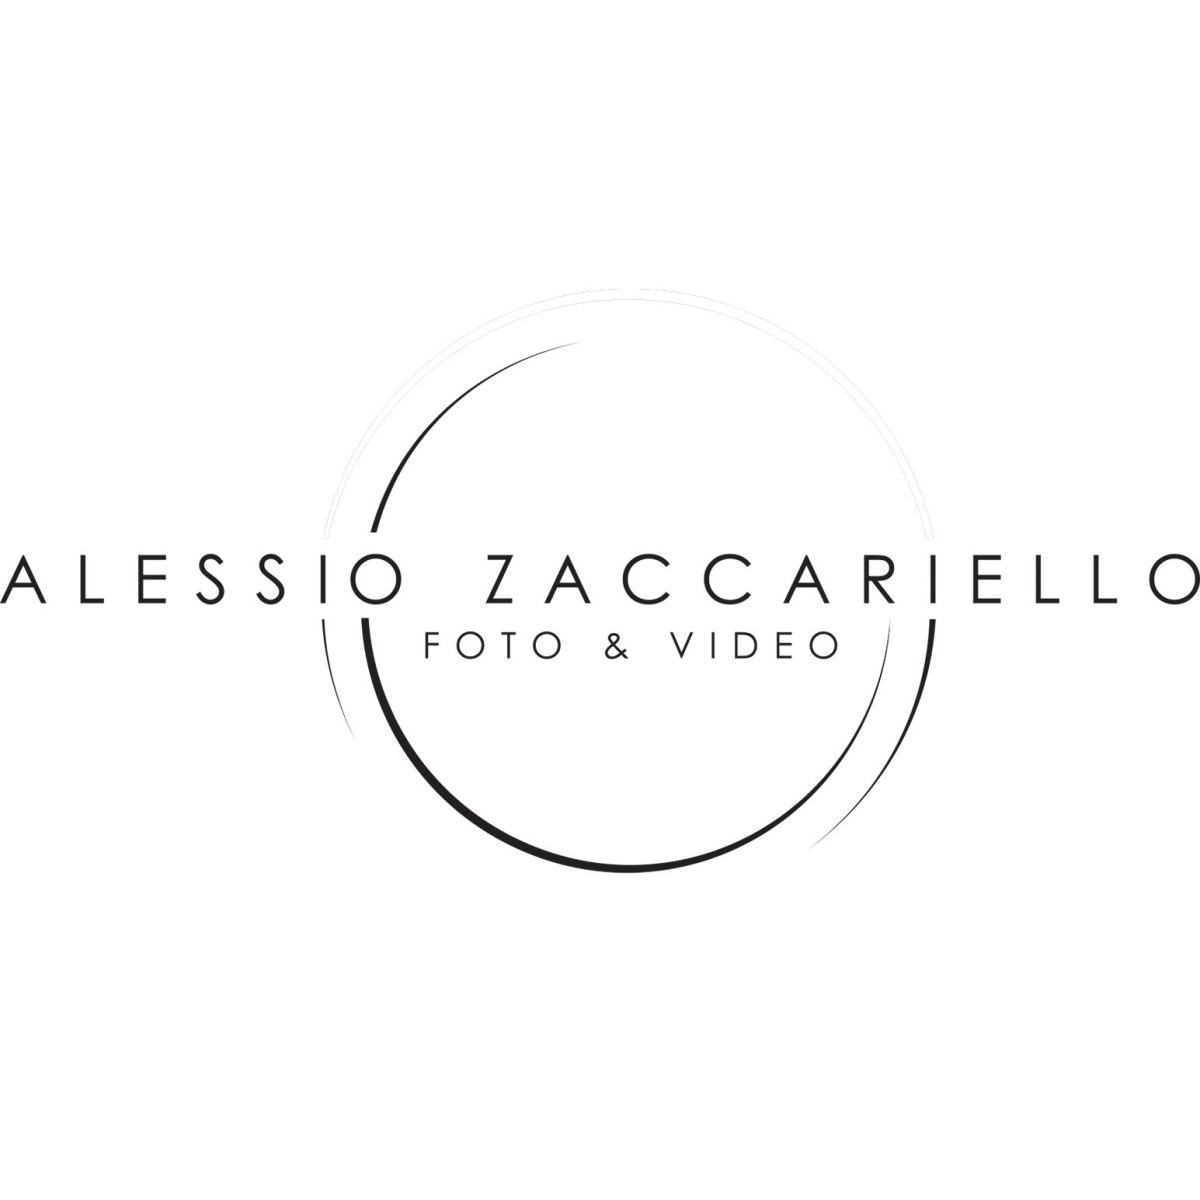 Alessio Zaccariello – Foto & Video